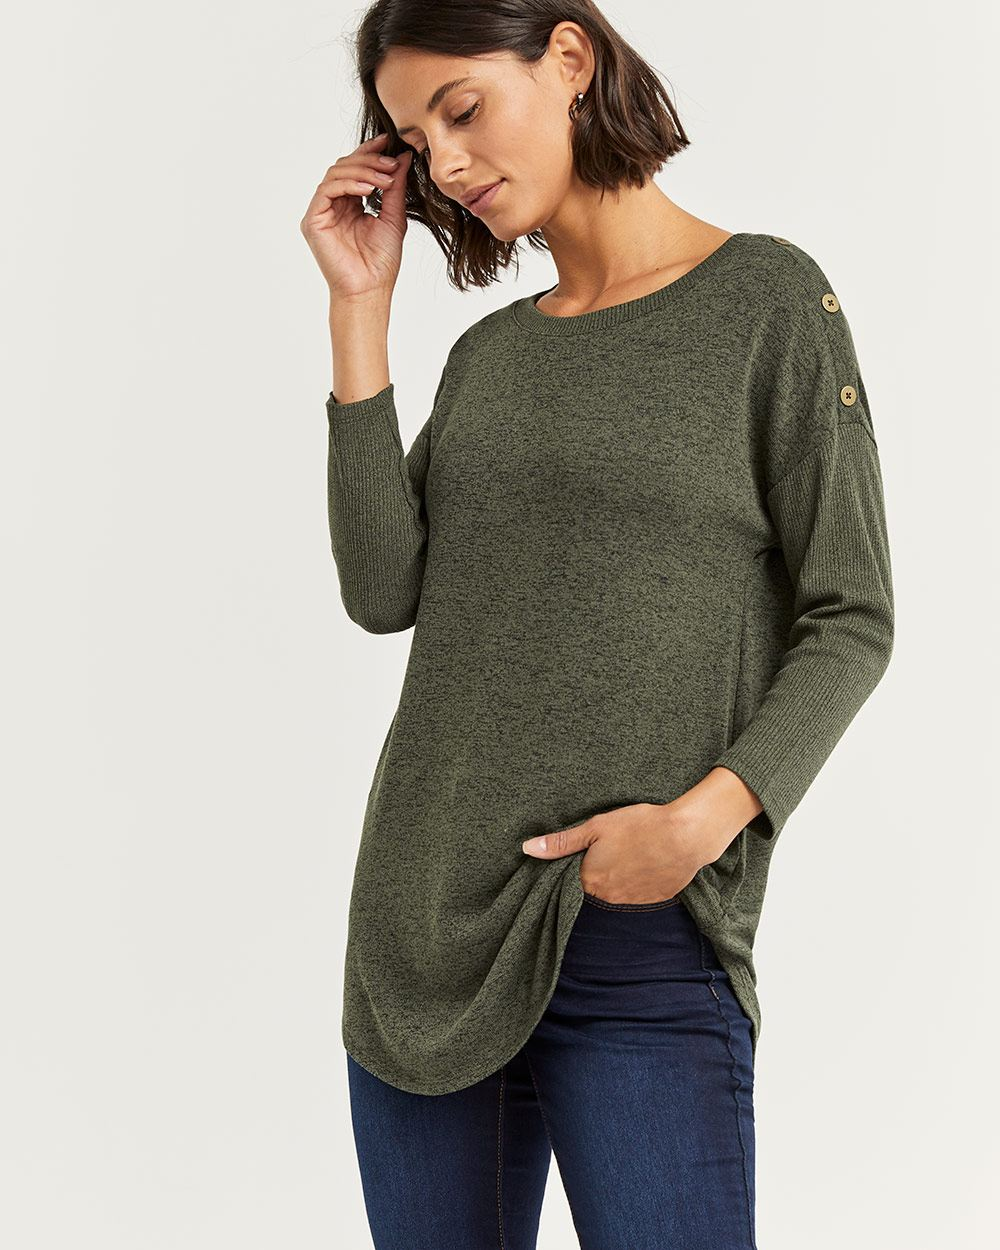 3/4 Sleeve Tee with Buttons at Shoulders